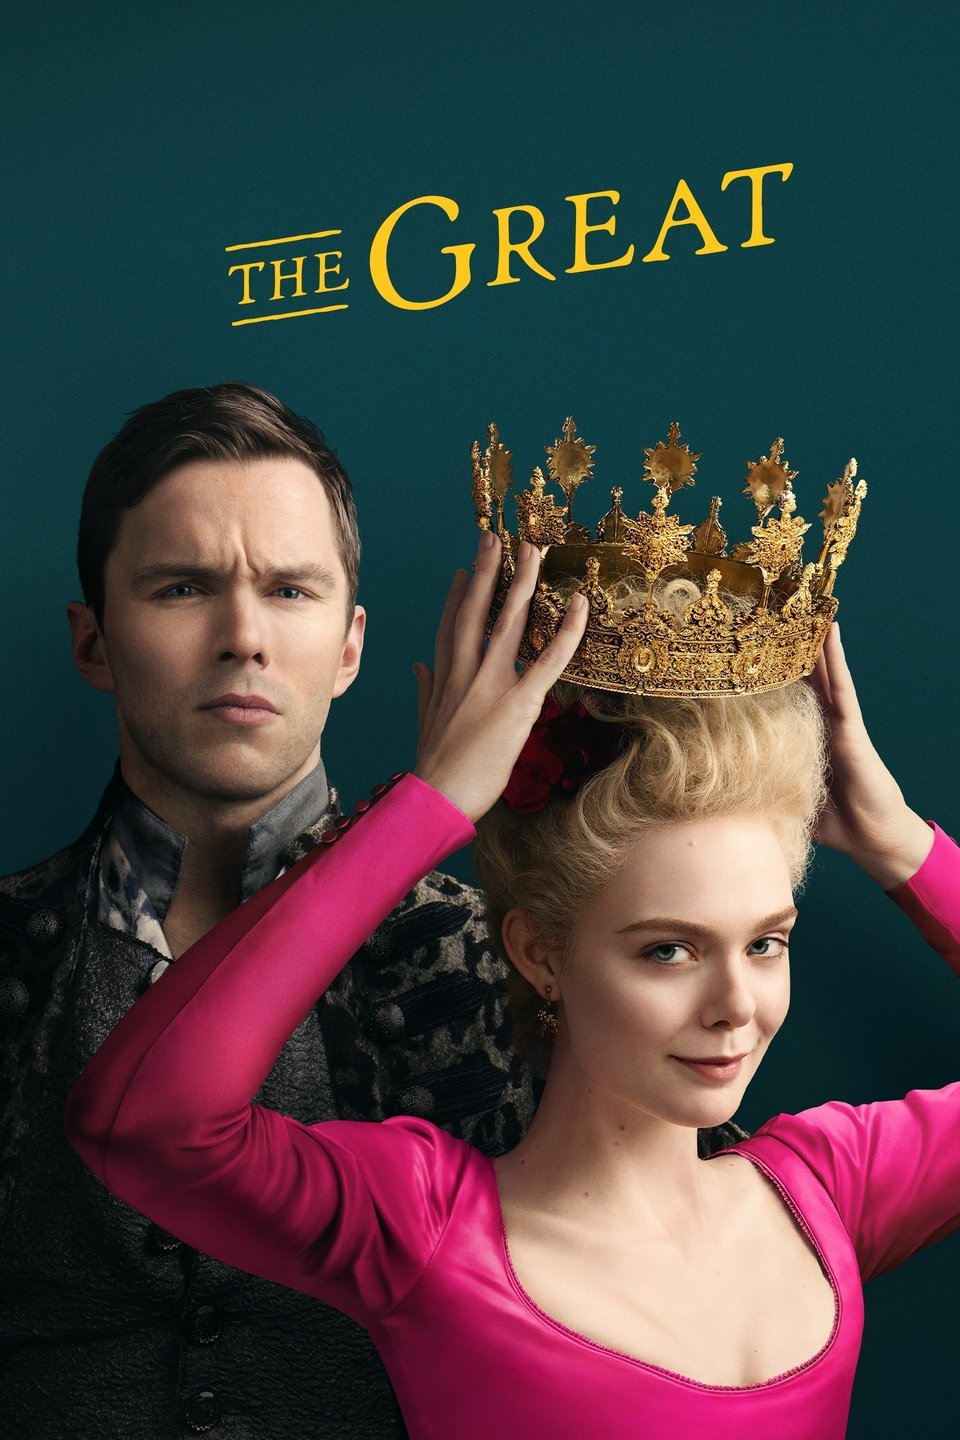 Promotional poster for THE GREAT.